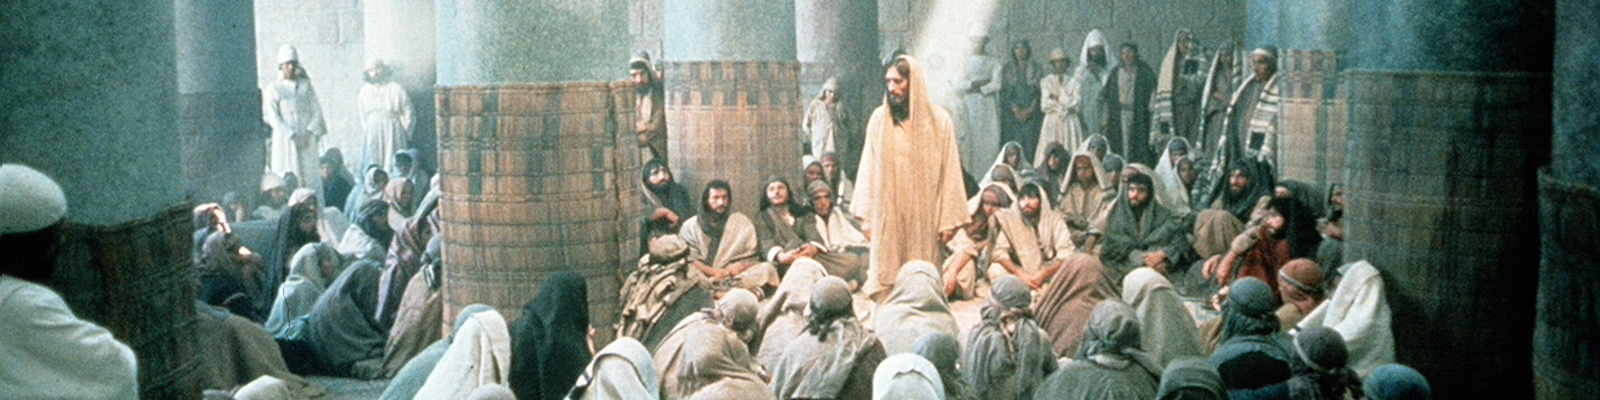 JESUS (ROBERT POWELL) PREACHES TO HIS MANY FOLLOWERS IN WHAT LOOKS LIKE A TEMPLE, A BEAM OF LIGHT FOCUSES ON JESUS THROUGH A WINDOW